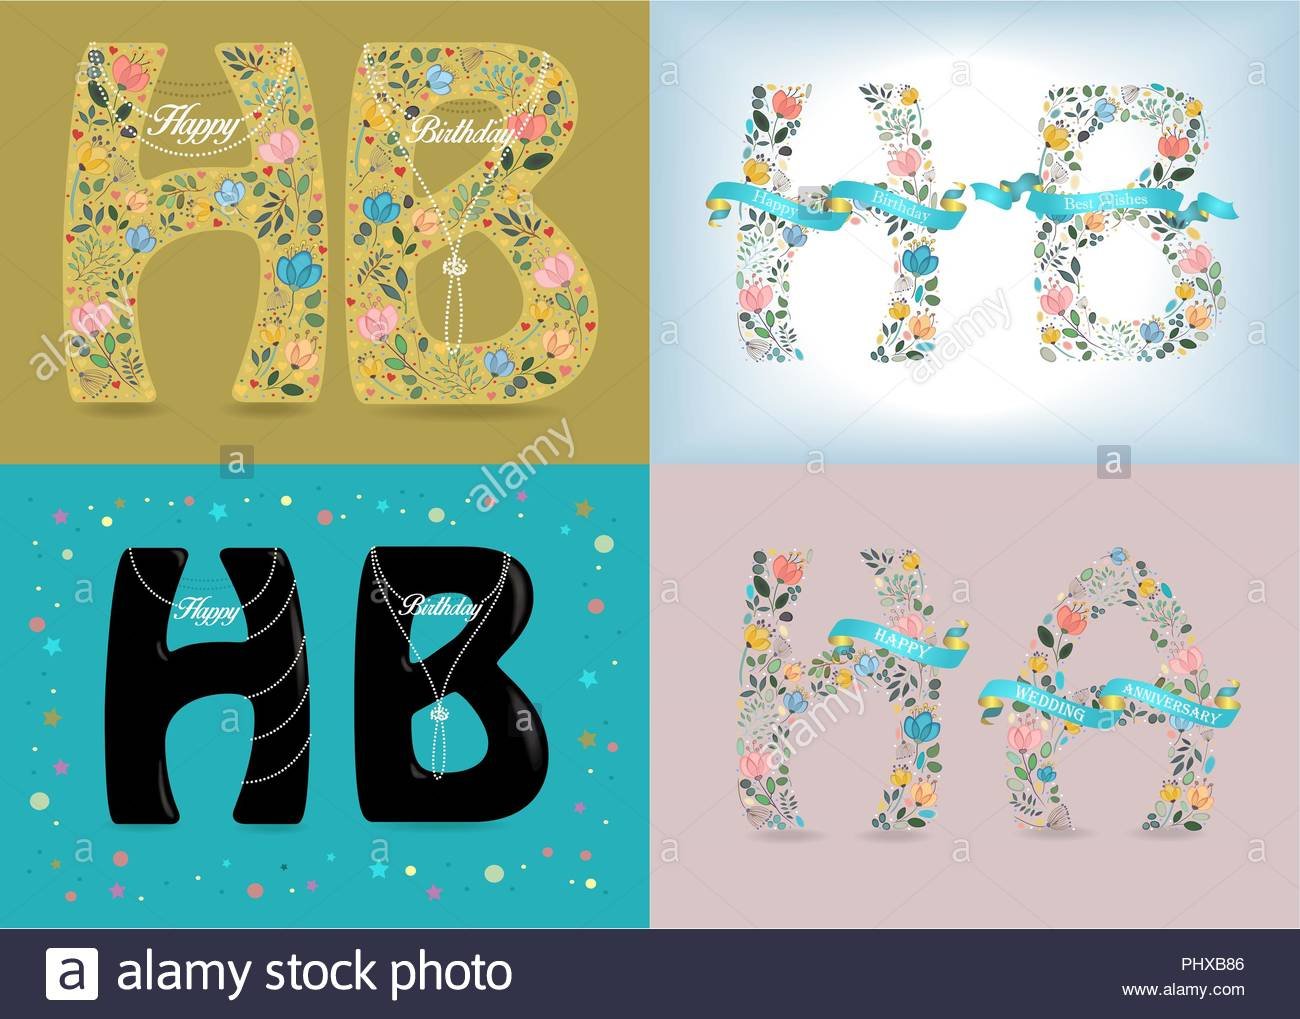 happy birthday set of abbreviations letters h and b folk floral decor graceful watercolor flowers and hearts pearl necklaces with texts as pendan